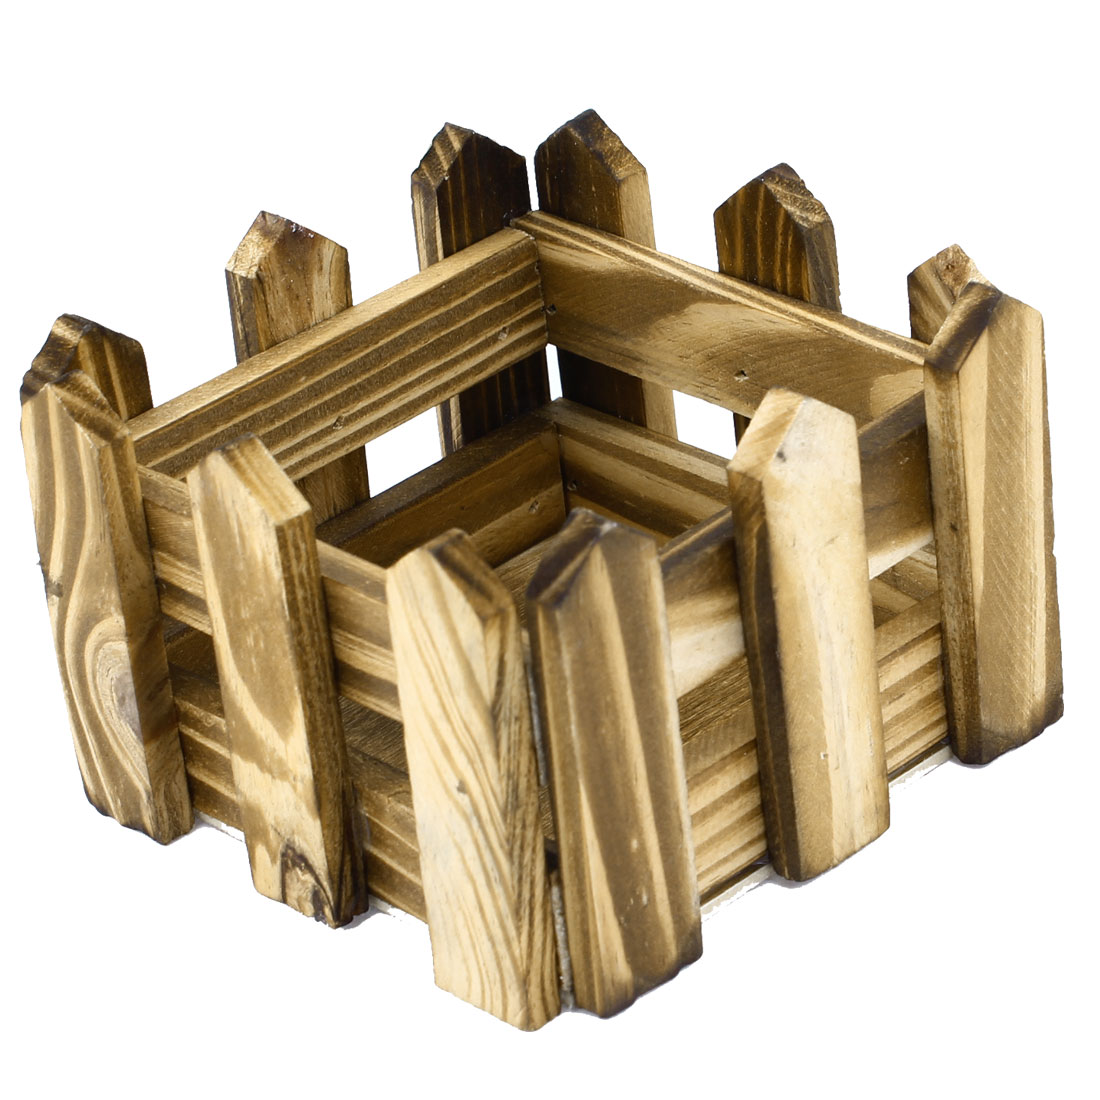 100mm Length Pale Yellow Brown Square Wood Fence Garden Flower Barrels Holder